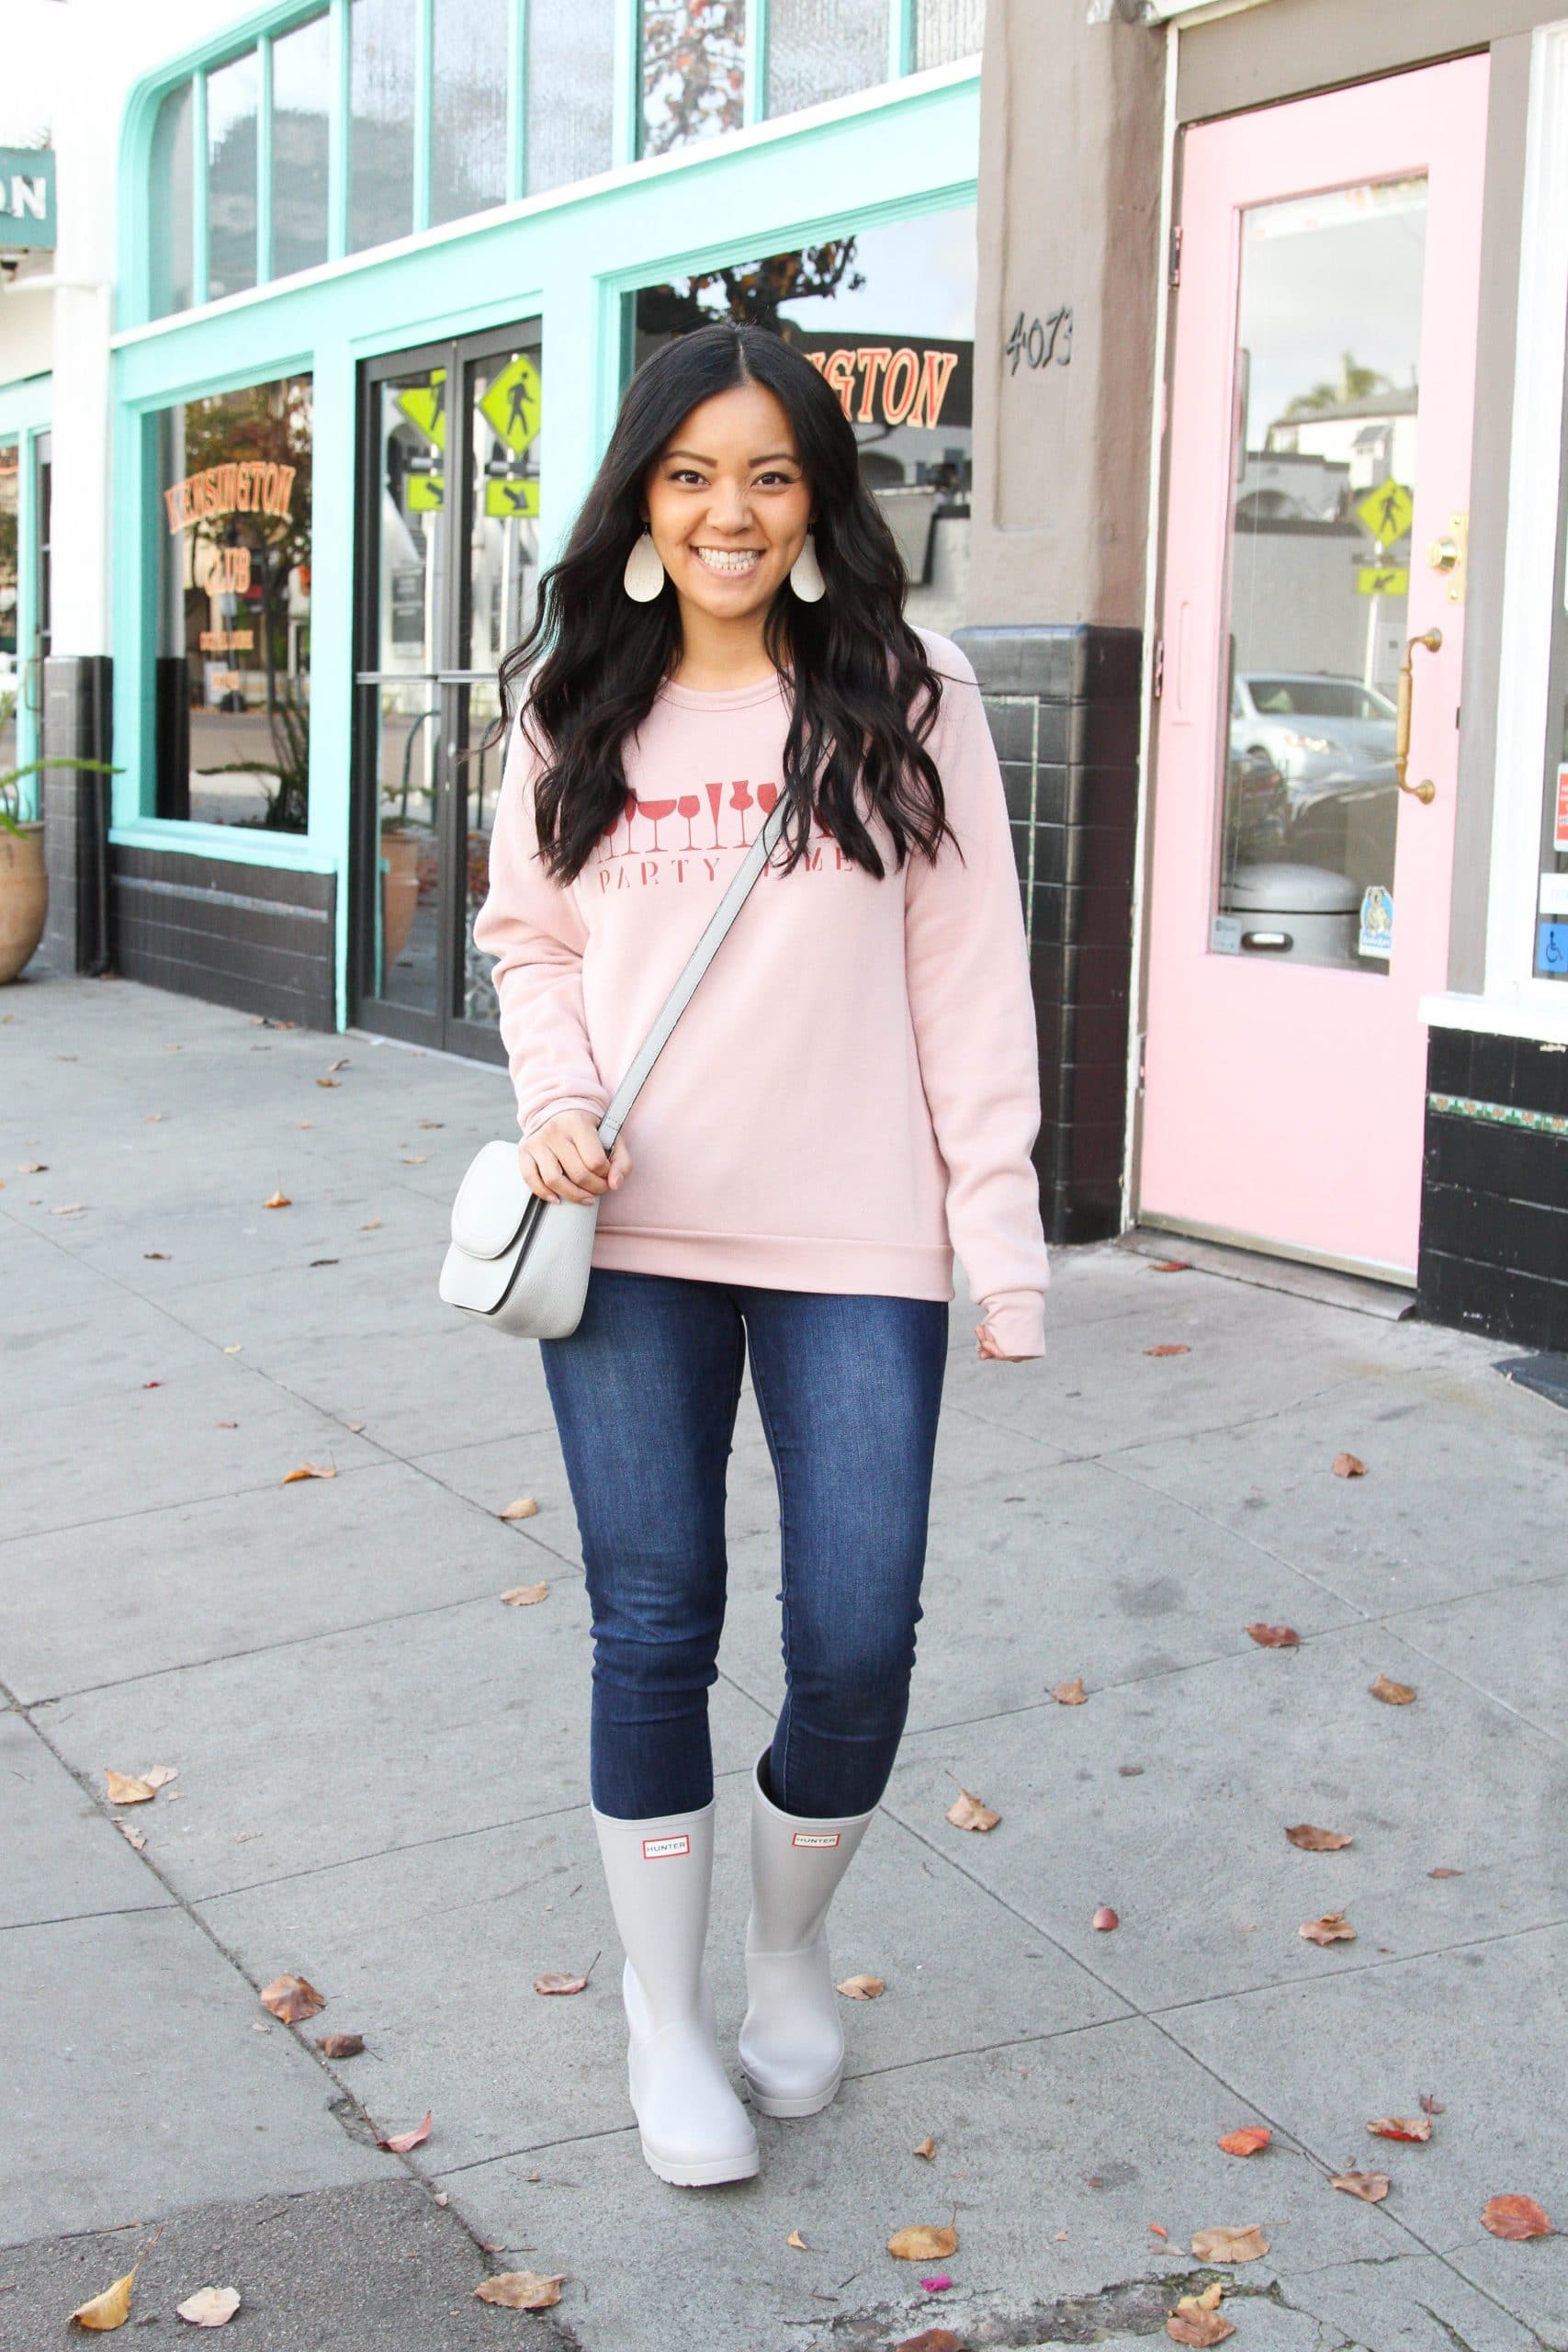 Casual Winter Outfit: pink graphic sweatshirt + skinny jeans + grey tall rain boots + grey crossbody bag + white cork leather earrings